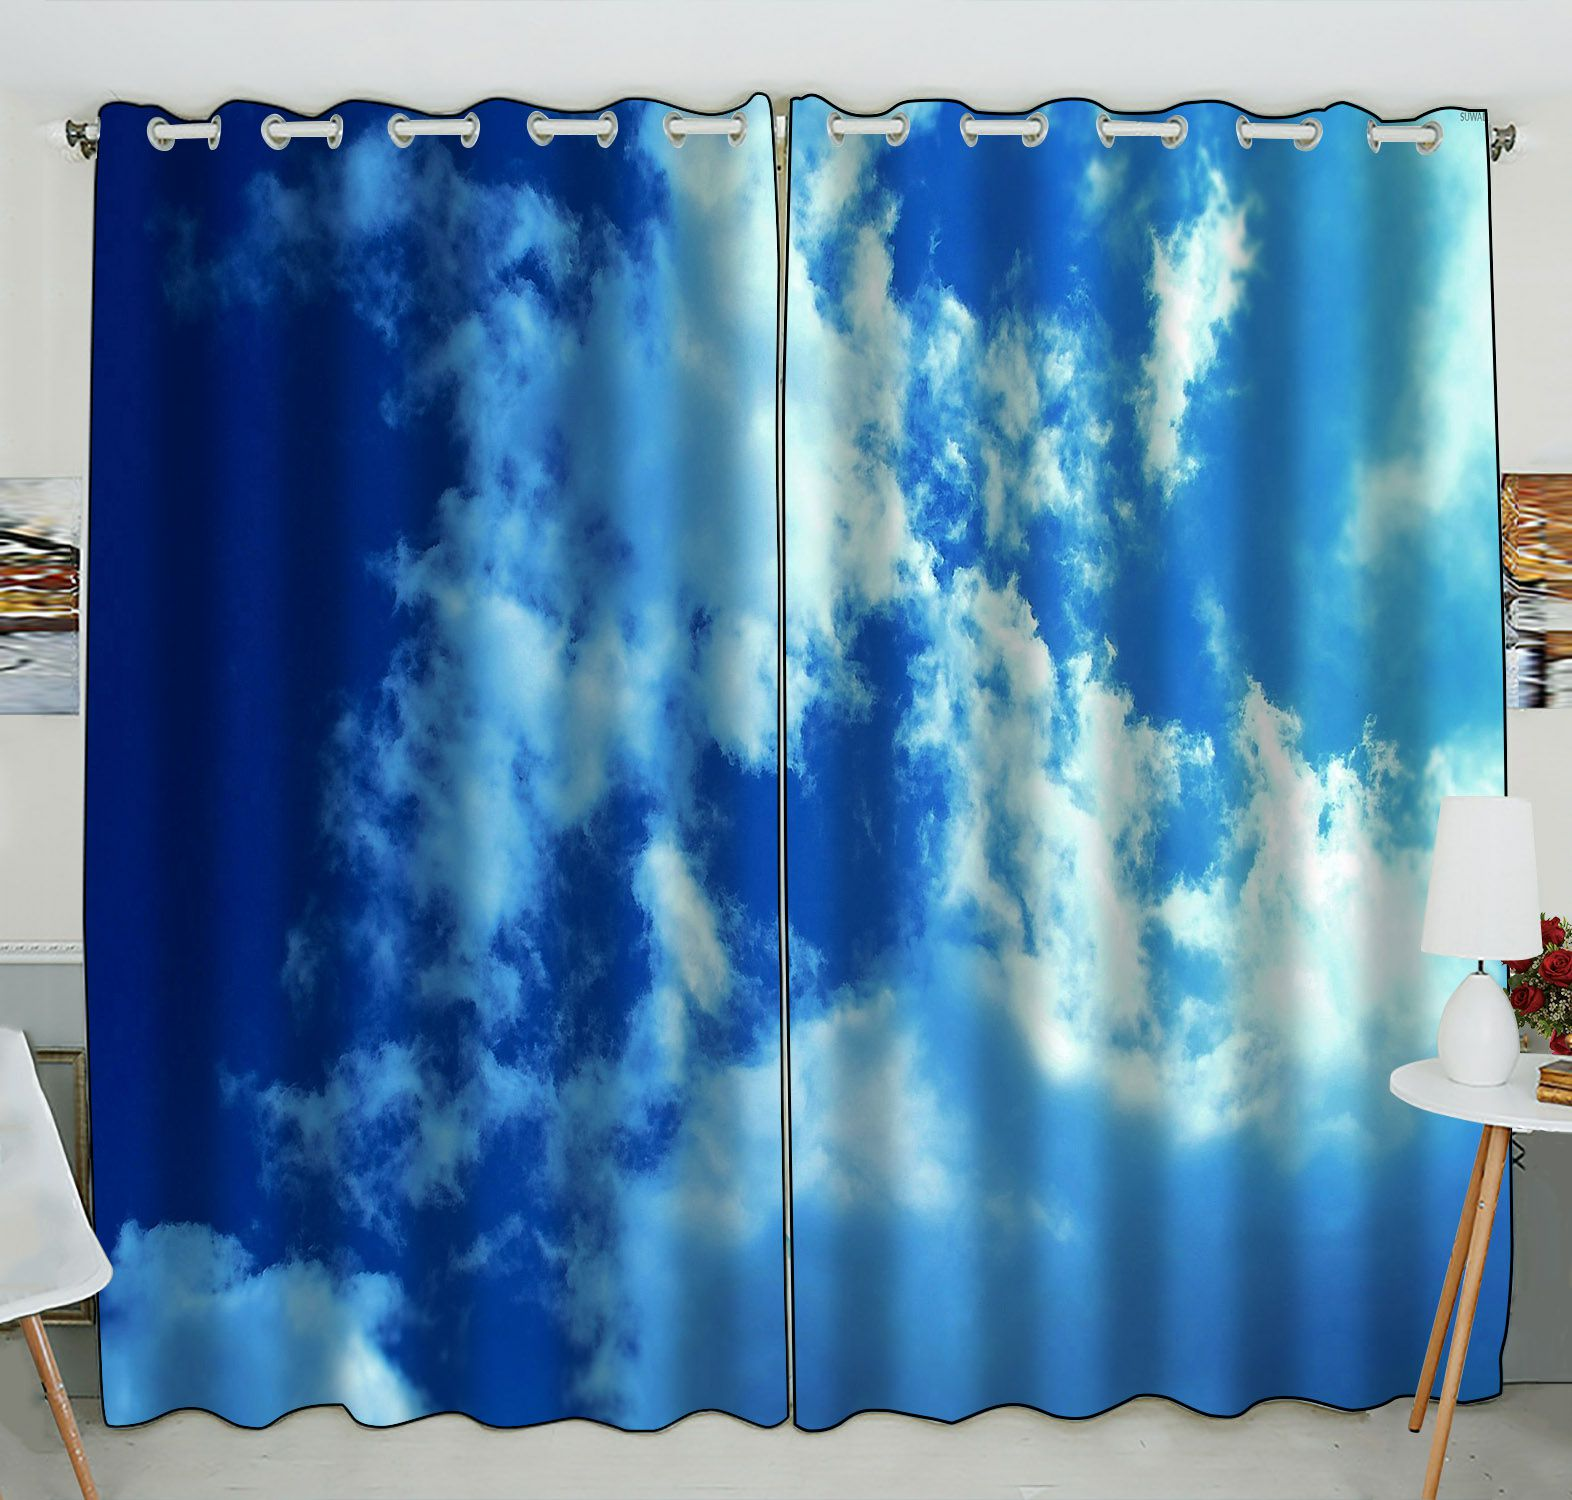 ZKGK Blue Sky White Clouds Window Curtain Drapery/Panels/Treatment For Living Room Bedroom Kids Rooms 52x84 inches Two Panel